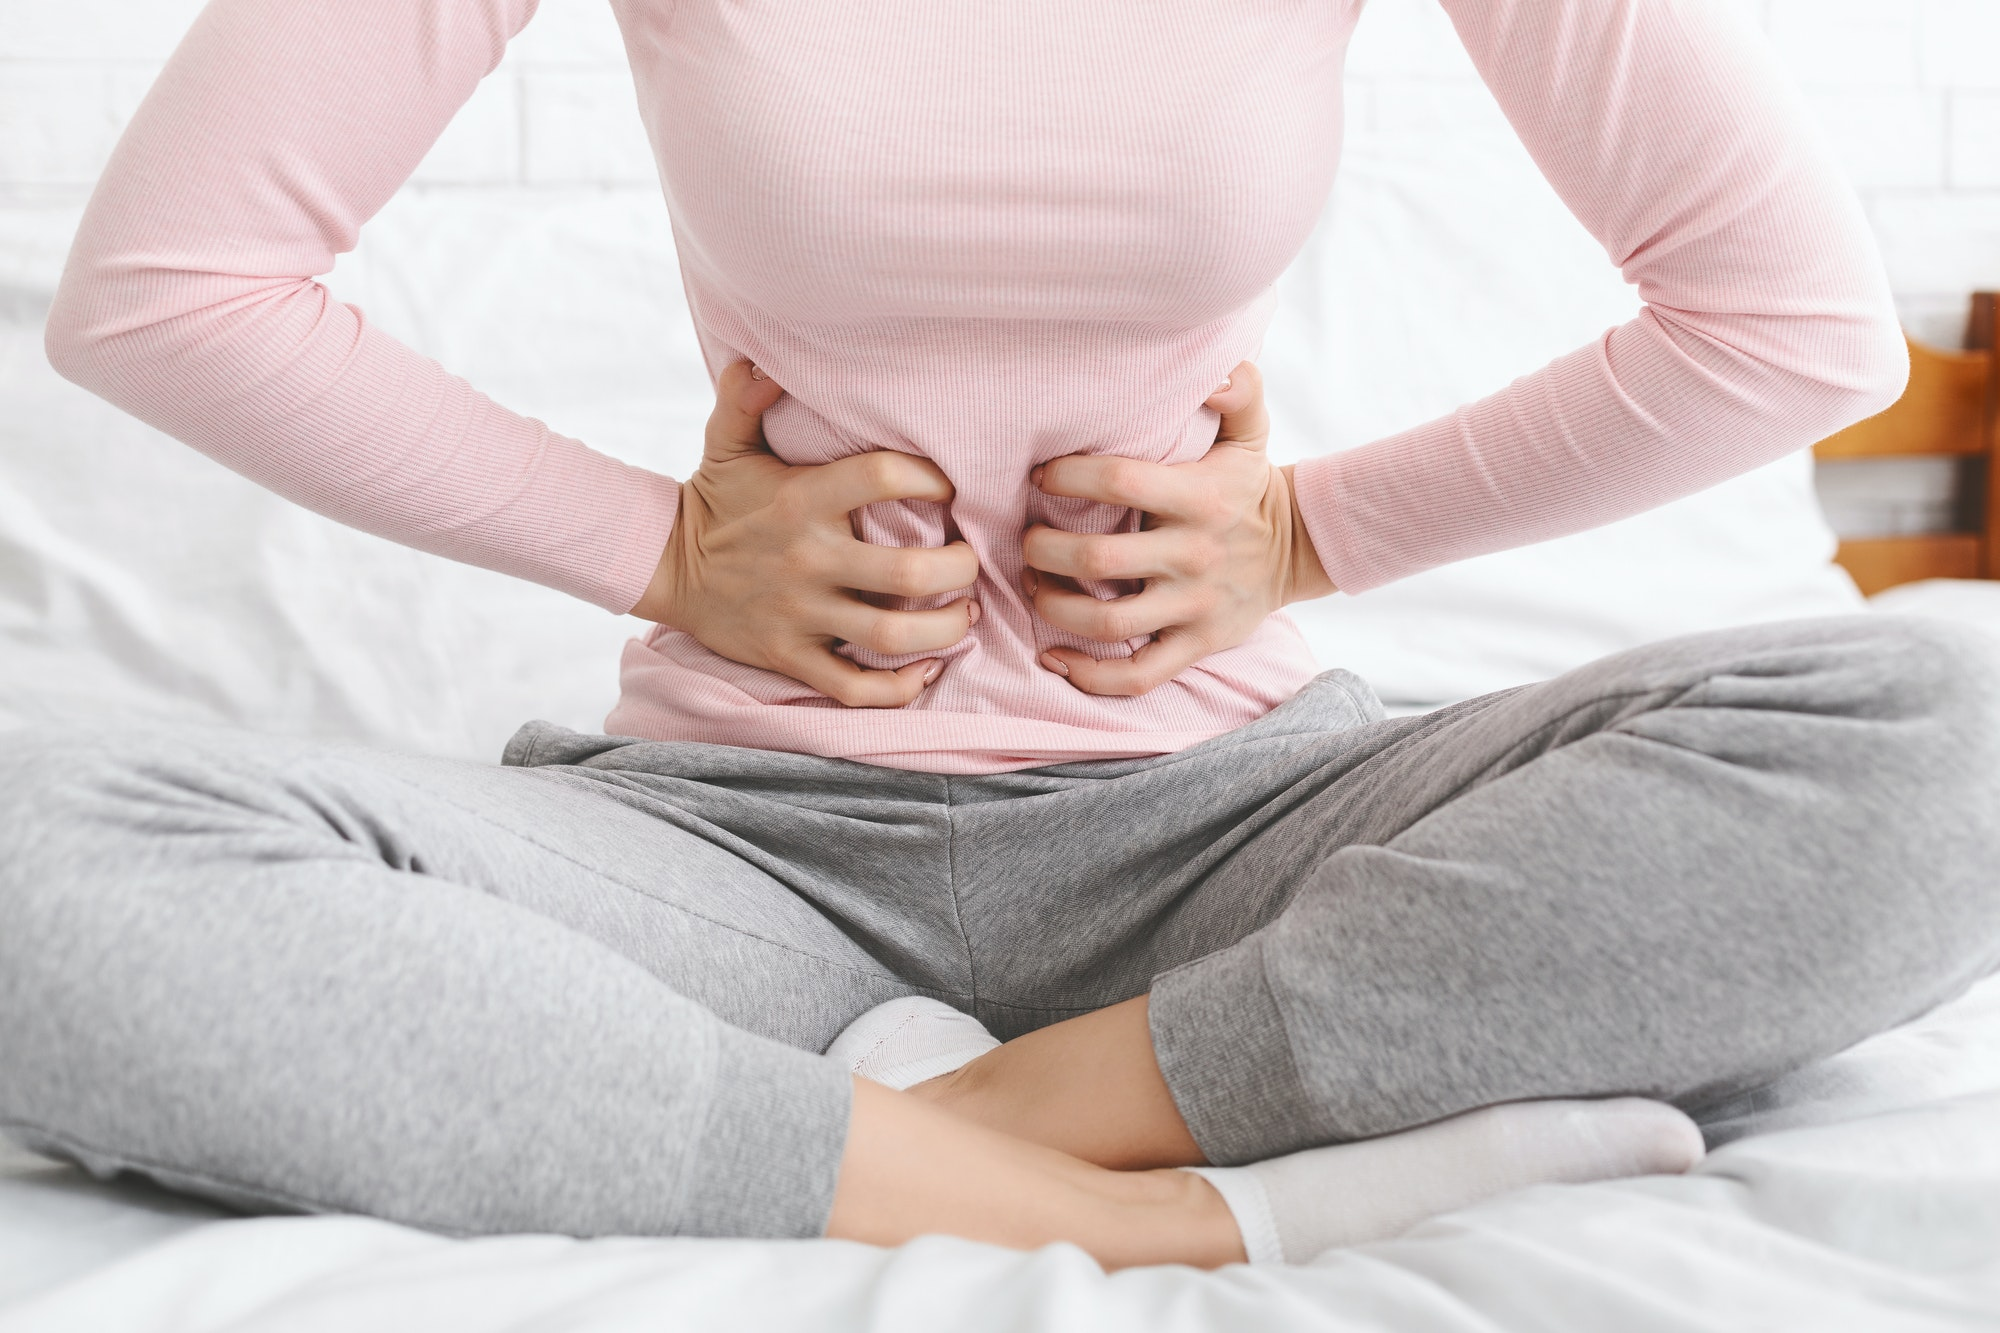 Woman suffering from abdominal pain, sitting in bed